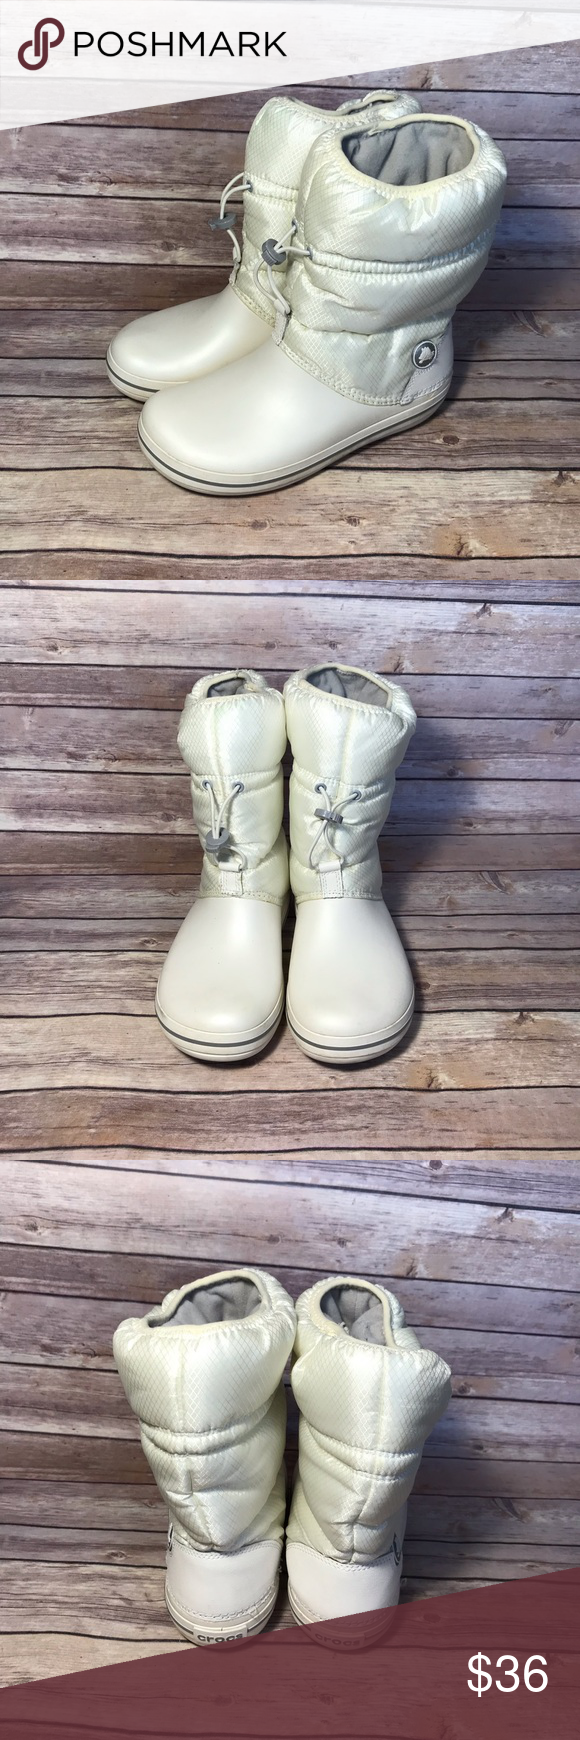 8d685f005eec51 CROC Winter Boots. Excellent condition. Warm   cozy. Keeps your feet dry.  Adjustable strap. CROCS Shoes Winter   Rain Boots